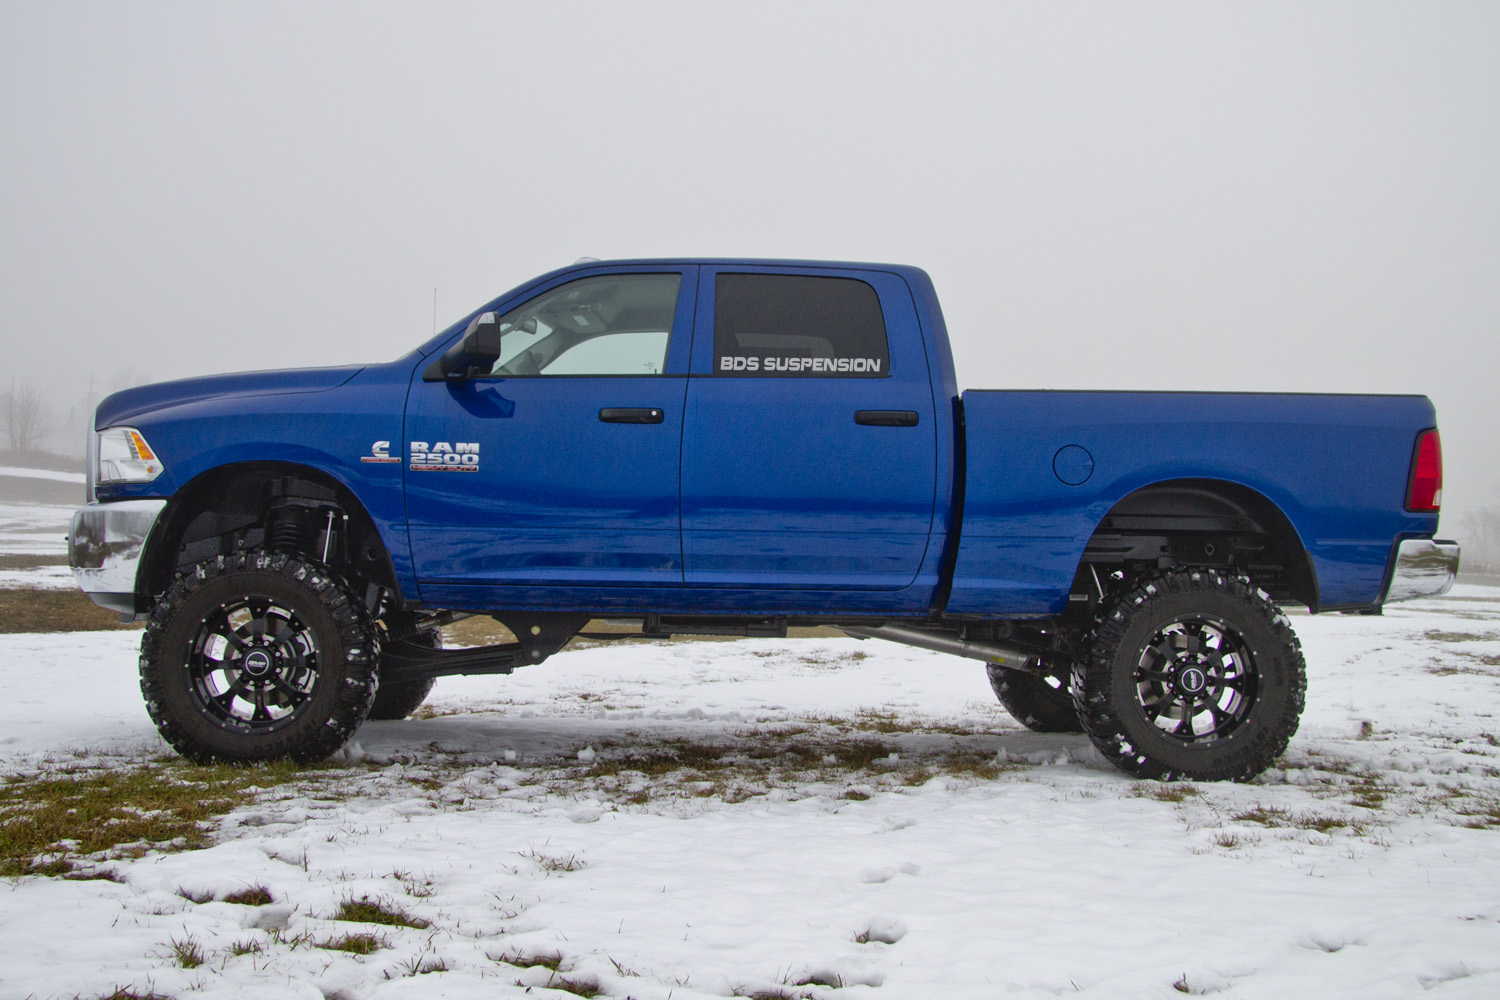 displaying 20 images for 2015 dodge ram 2500 lifted - Dodge Truck 2015 Lifted